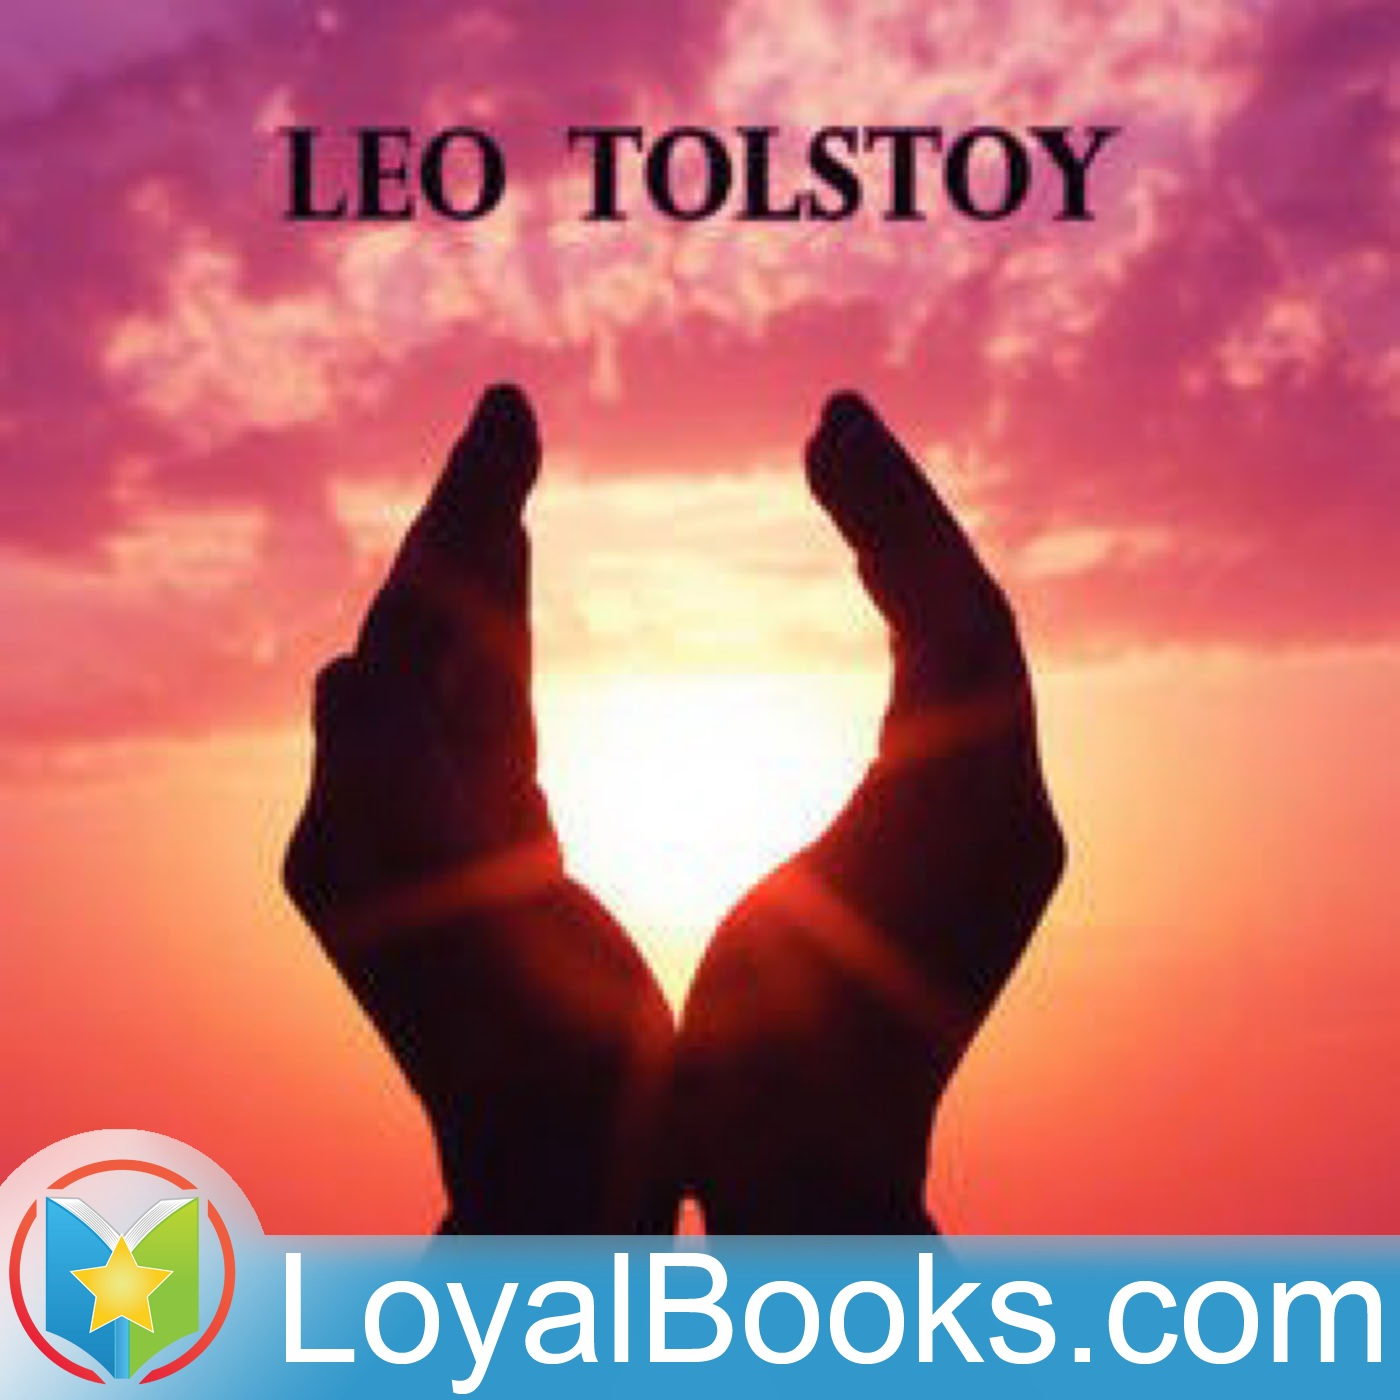 <![CDATA[The Kingdom of God is within you by Leo Tolstoy]]>